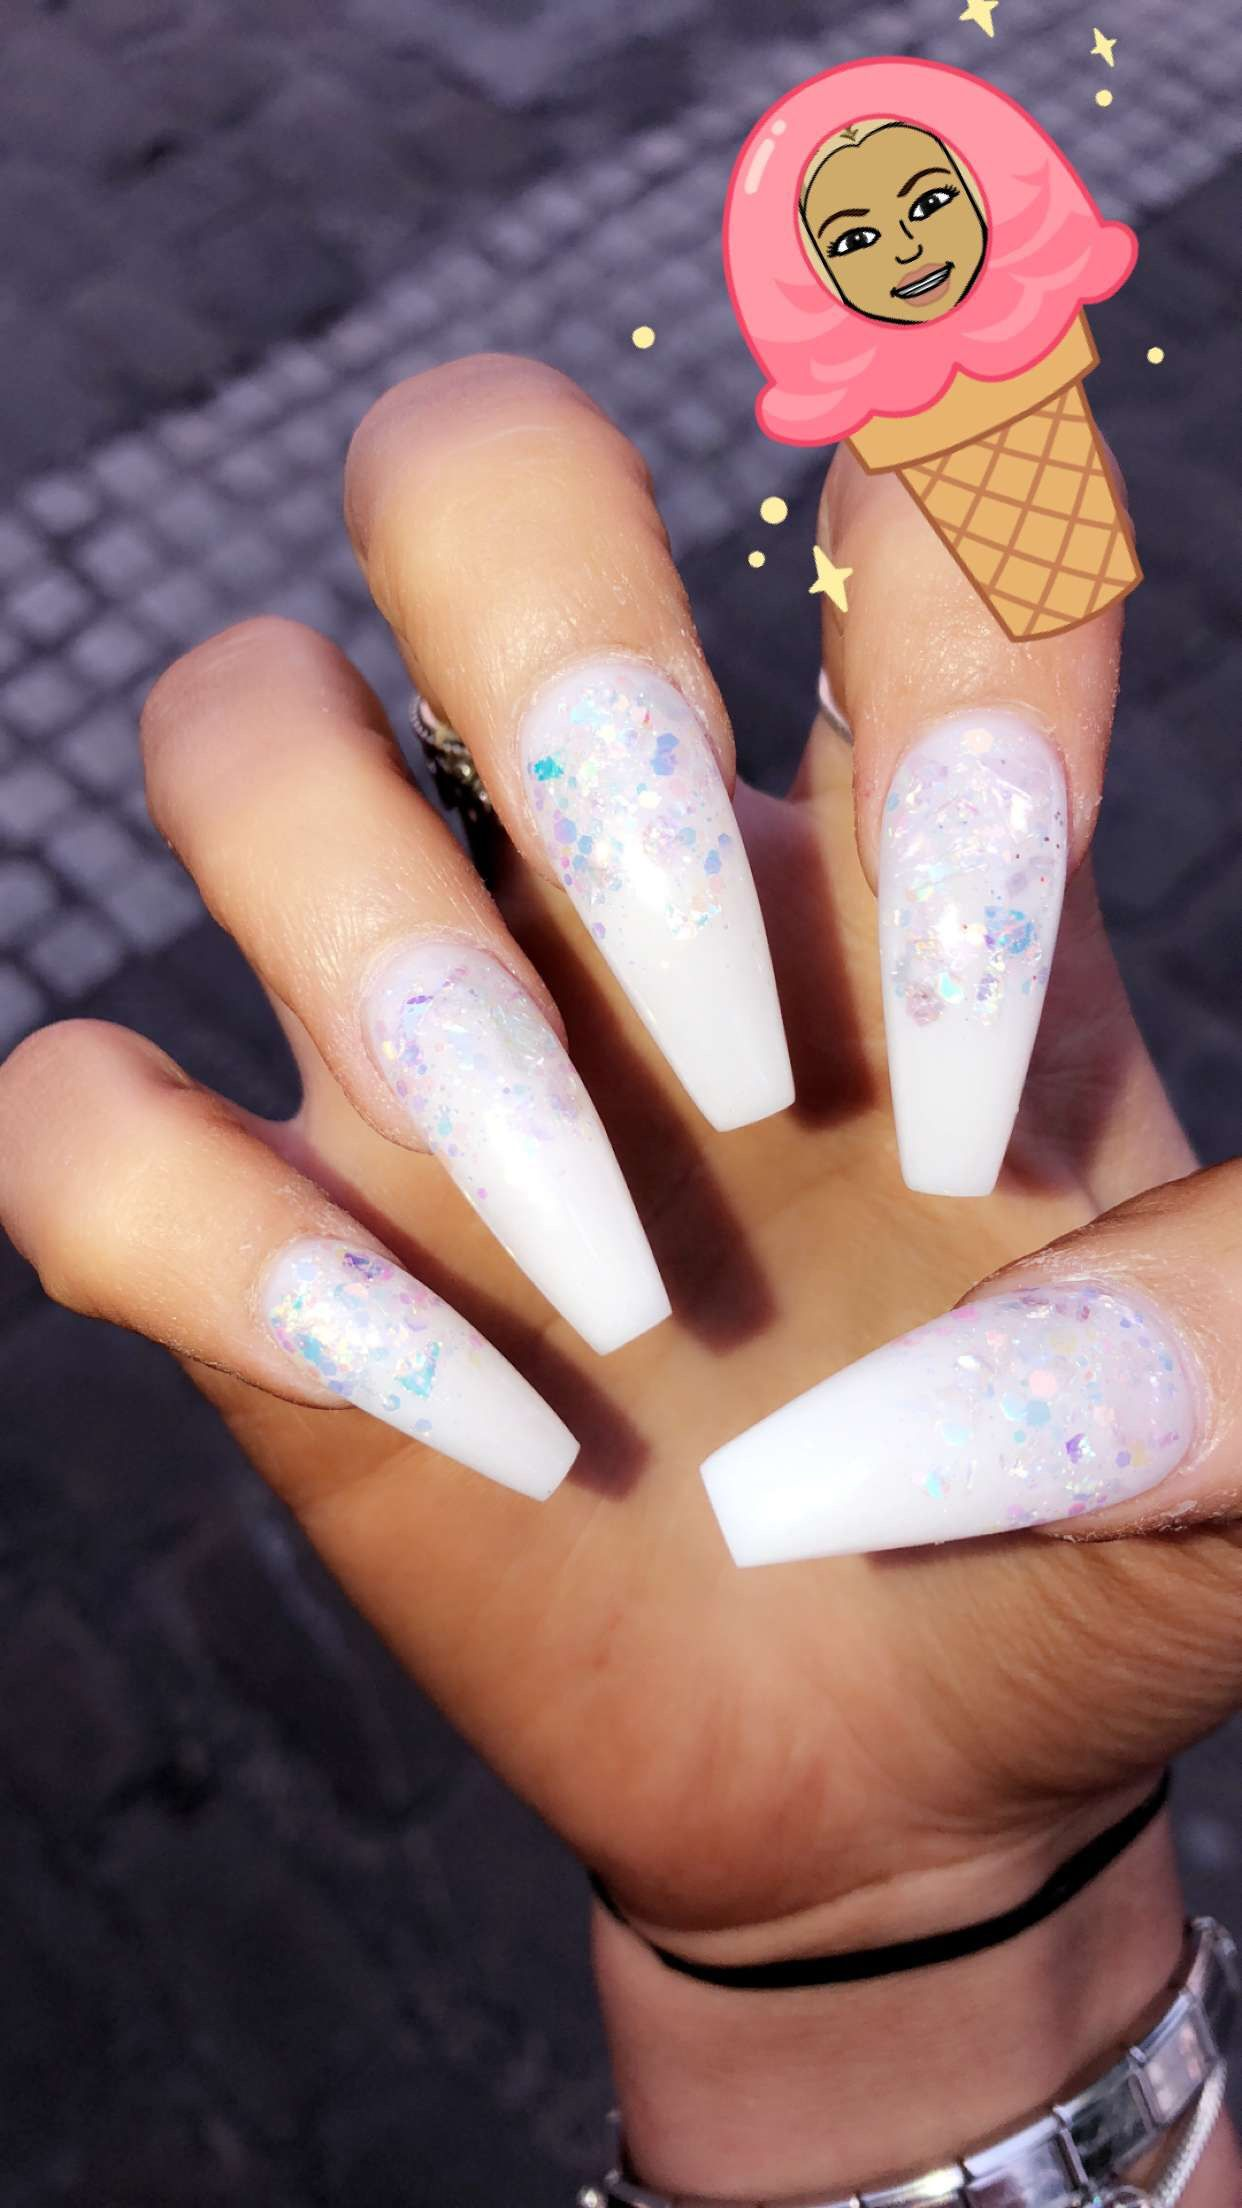 White Acrylic Coffin Sparkle Flake Gem Baddie Nails White Acrylic Nails Acrylic Nail Designs Acrylic Nail Designs Coffin